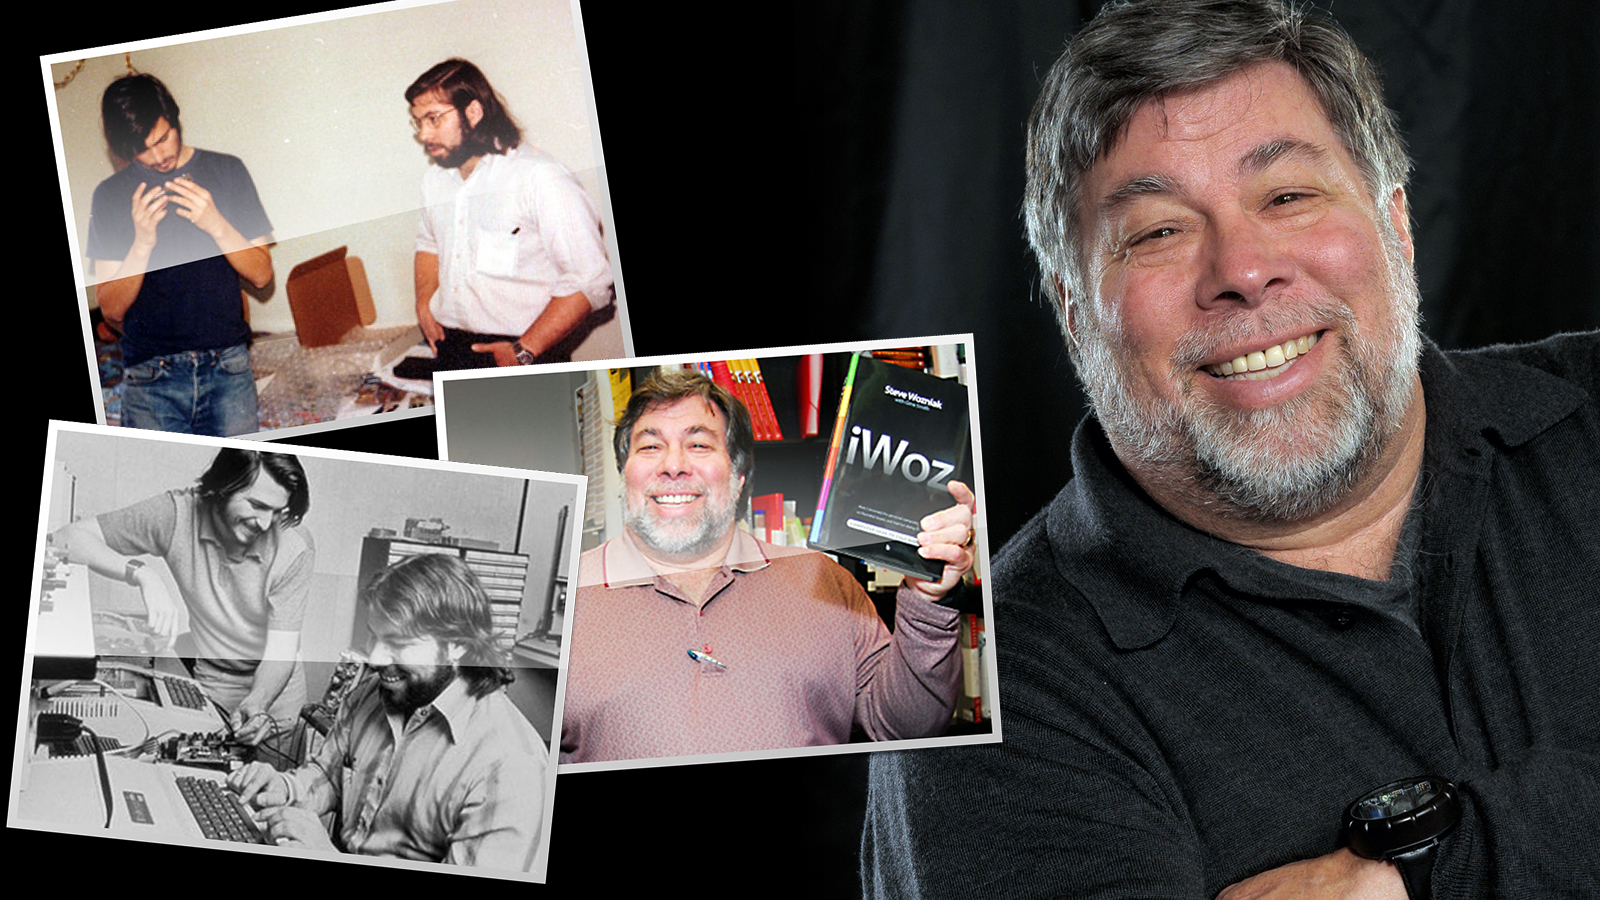 Click here to read How Steve Wozniak Became the Genius Who Invented the Personal Computer